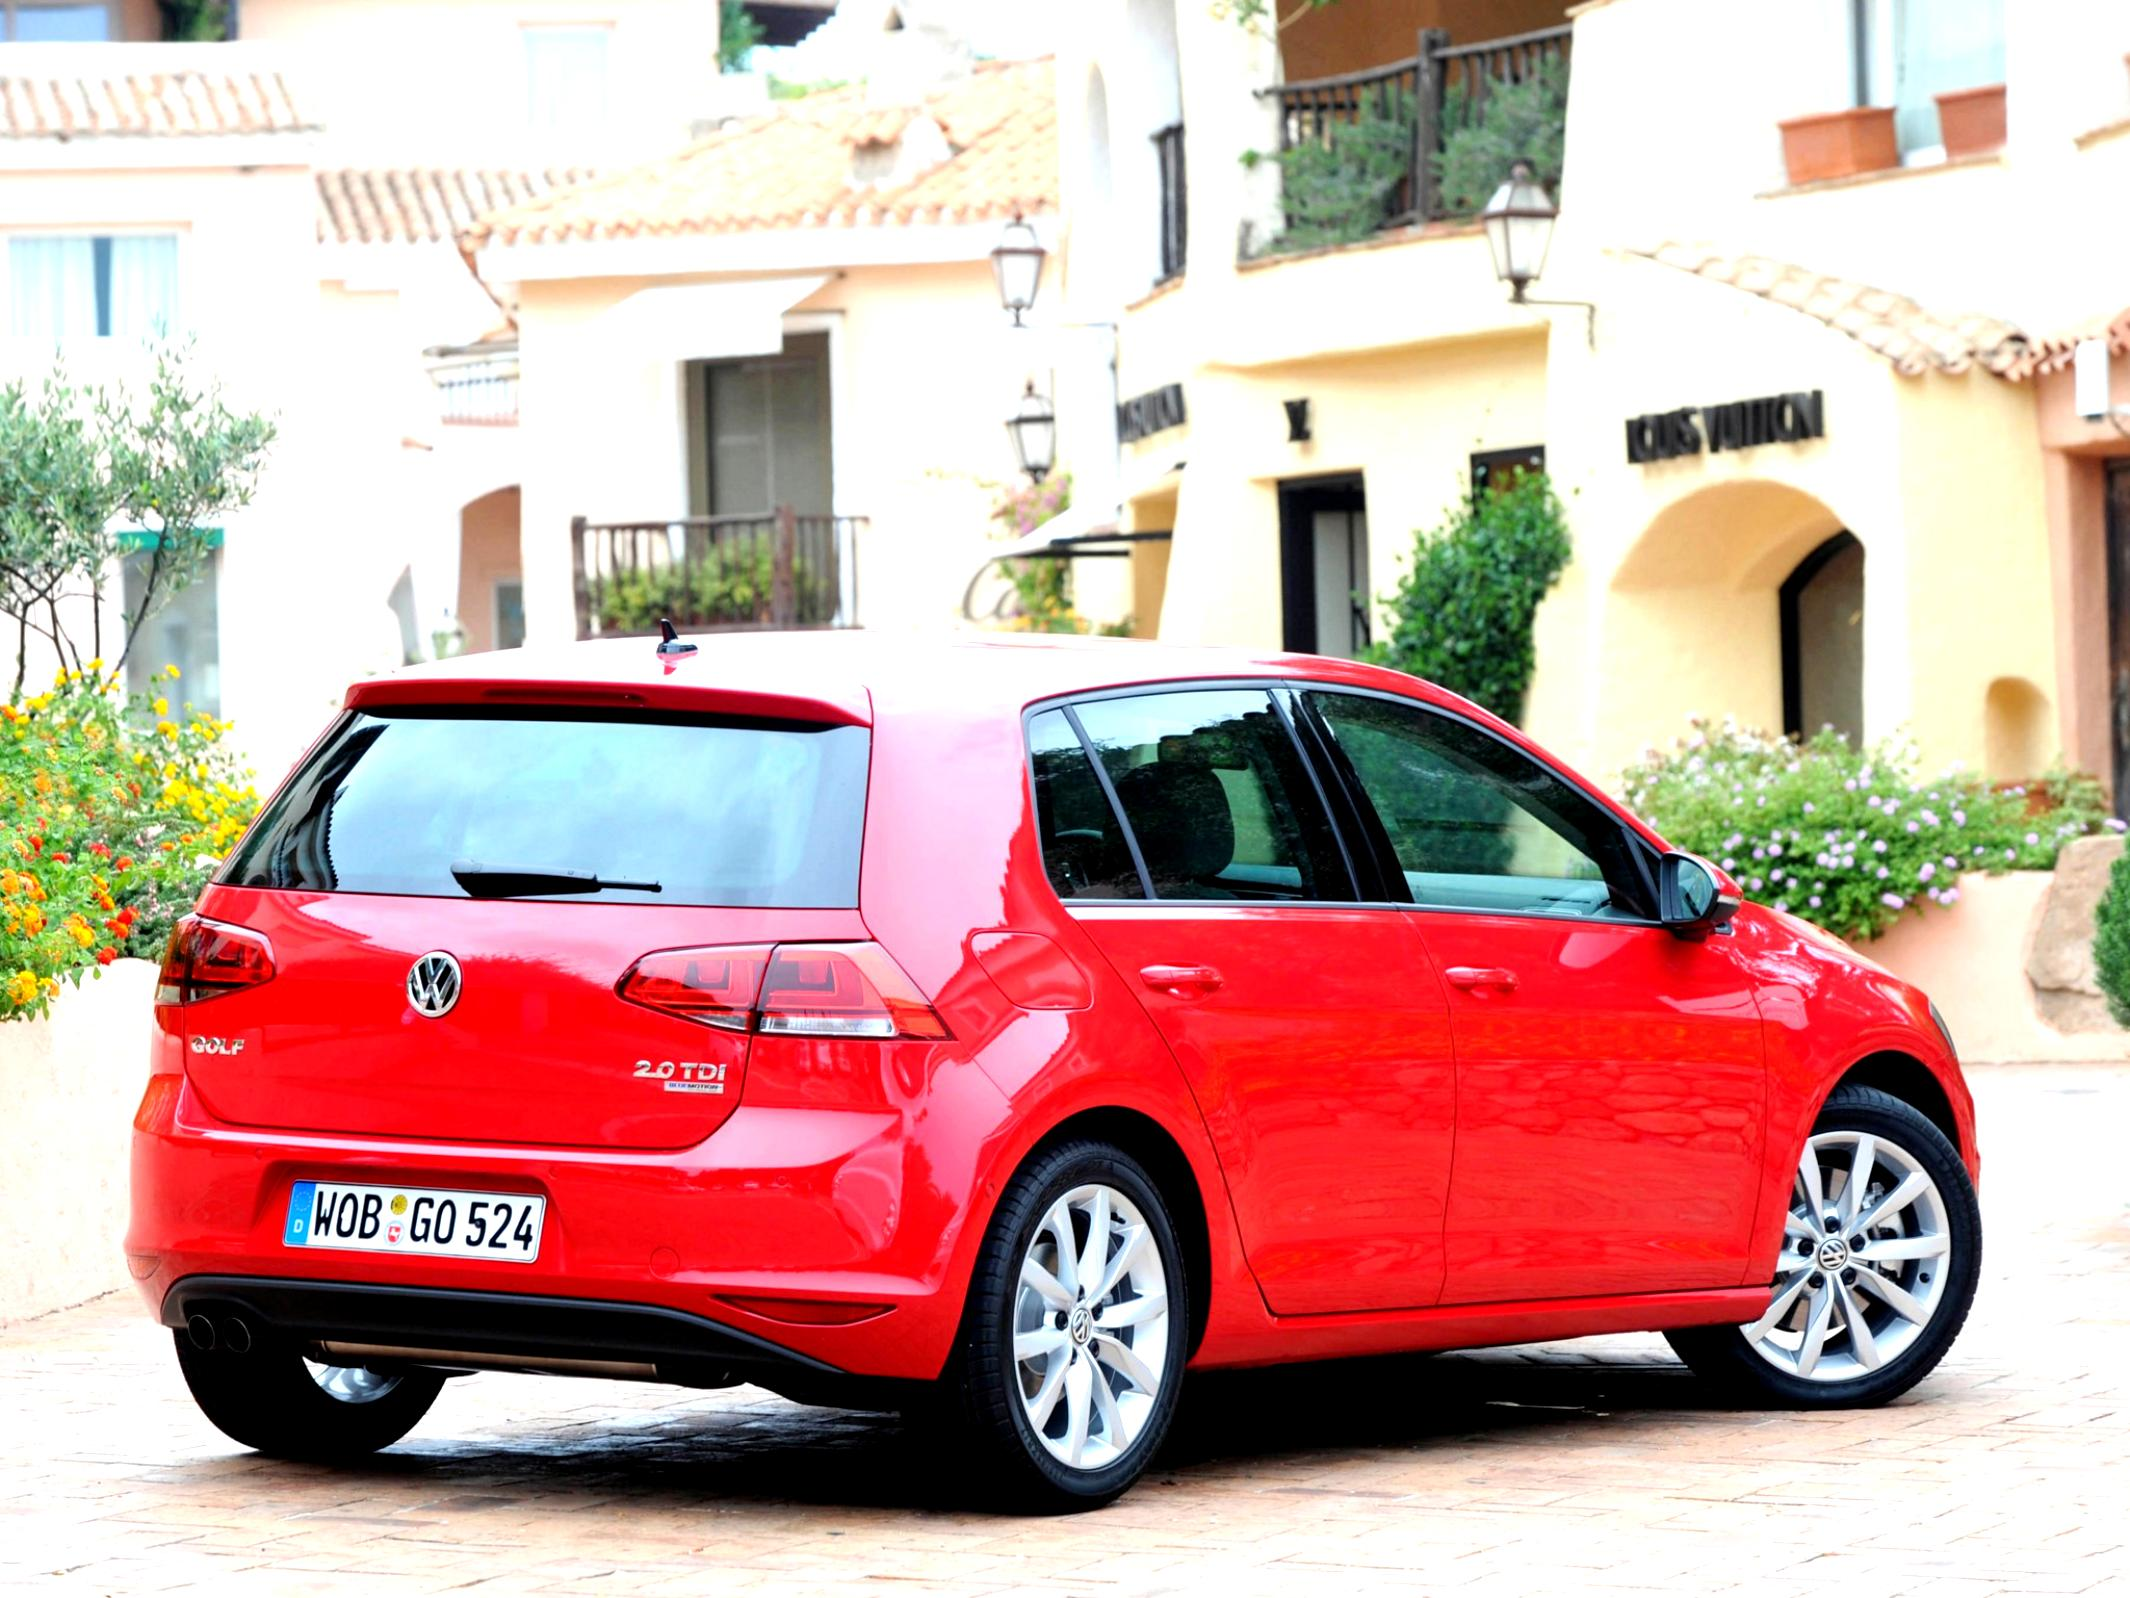 Volkswagen Golf VII 5 Doors 2012 #39